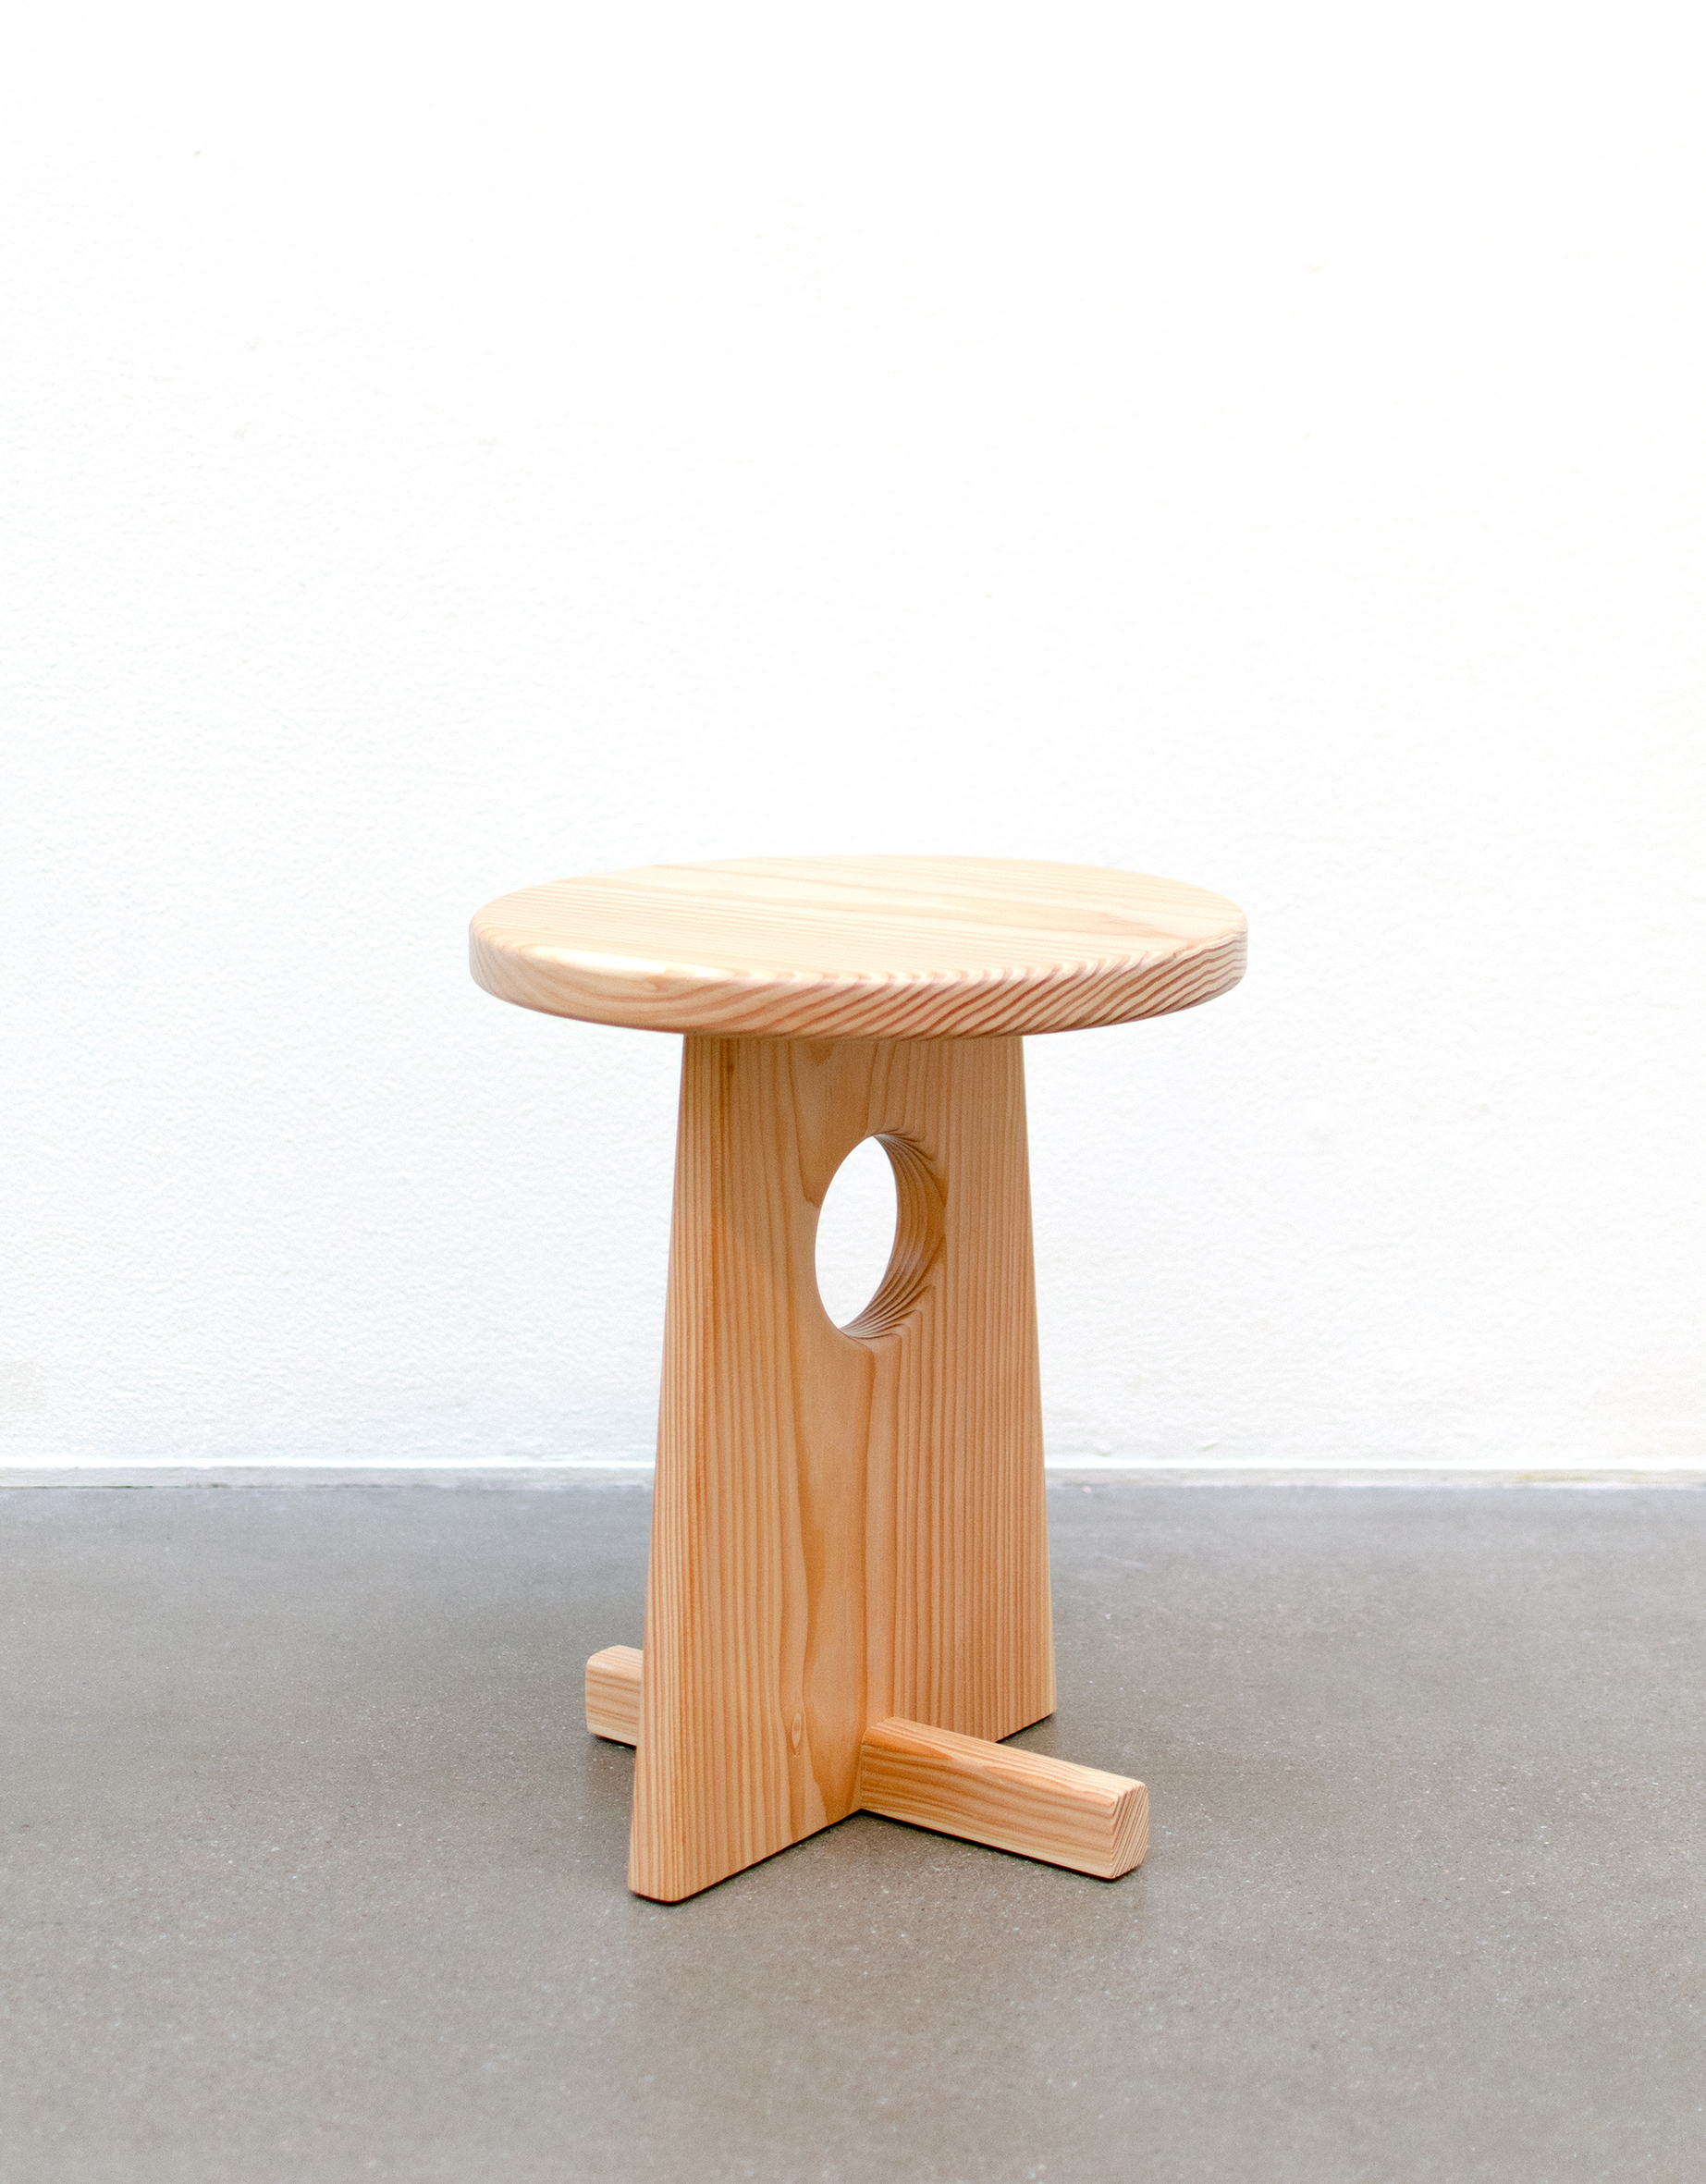 'Nest' side table by Daniel Svahn